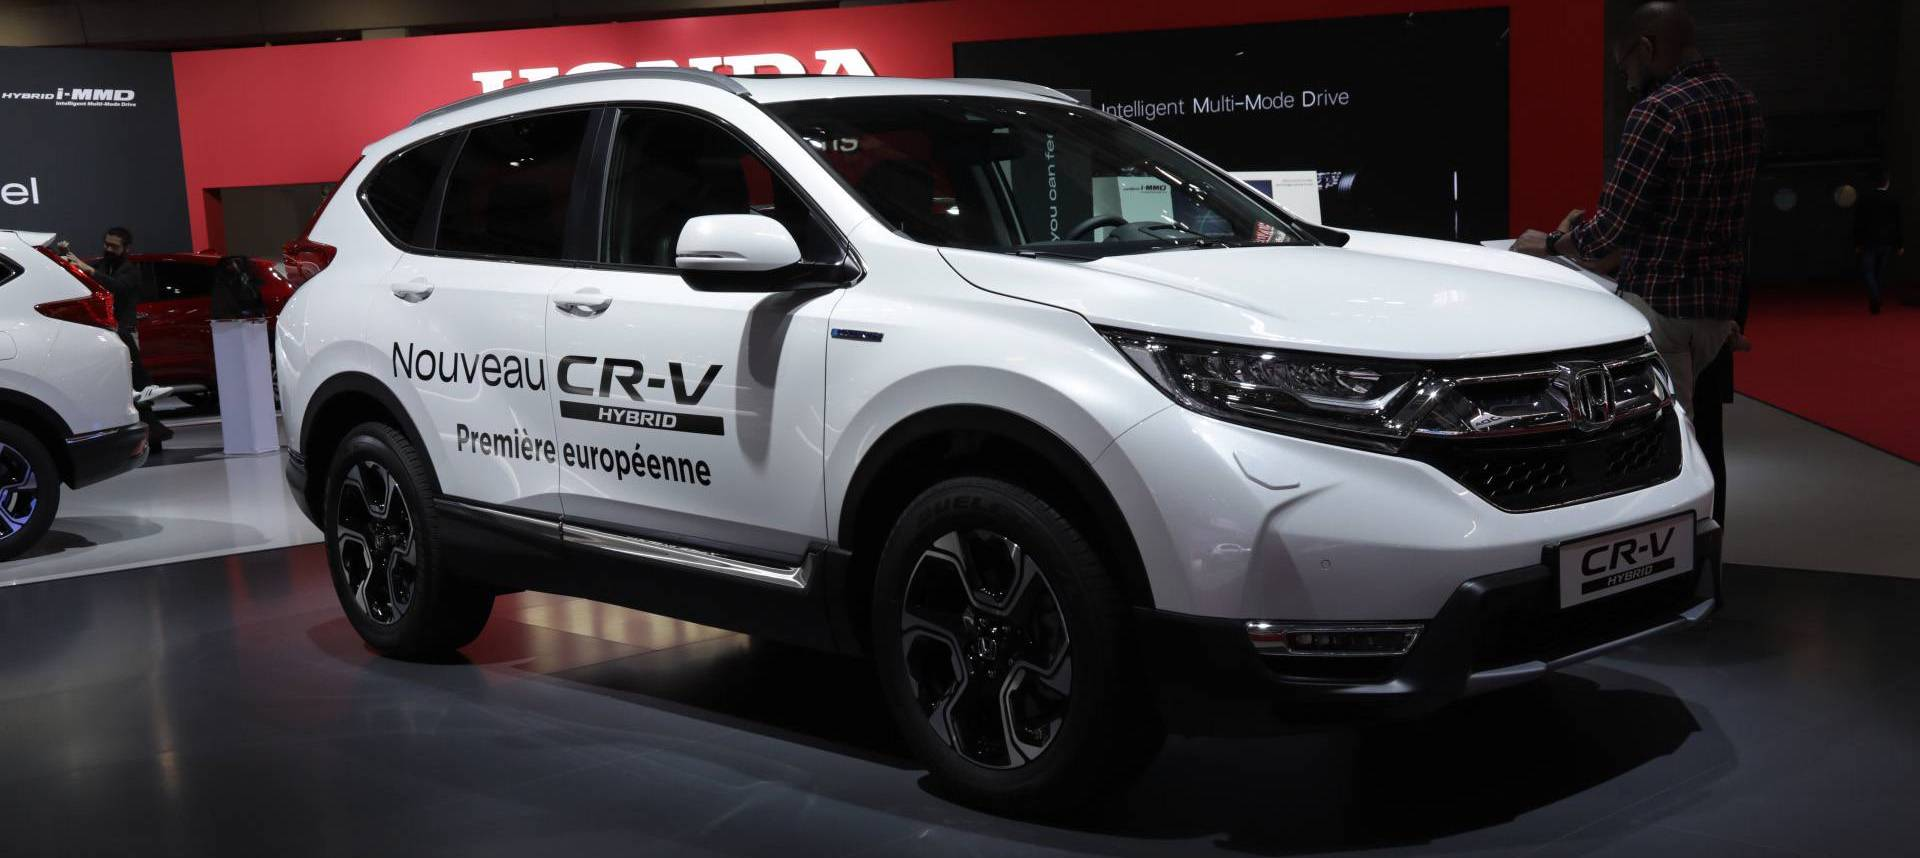 Production-Ready Honda CR-V Hybrid Arrives At Paris Motor Show